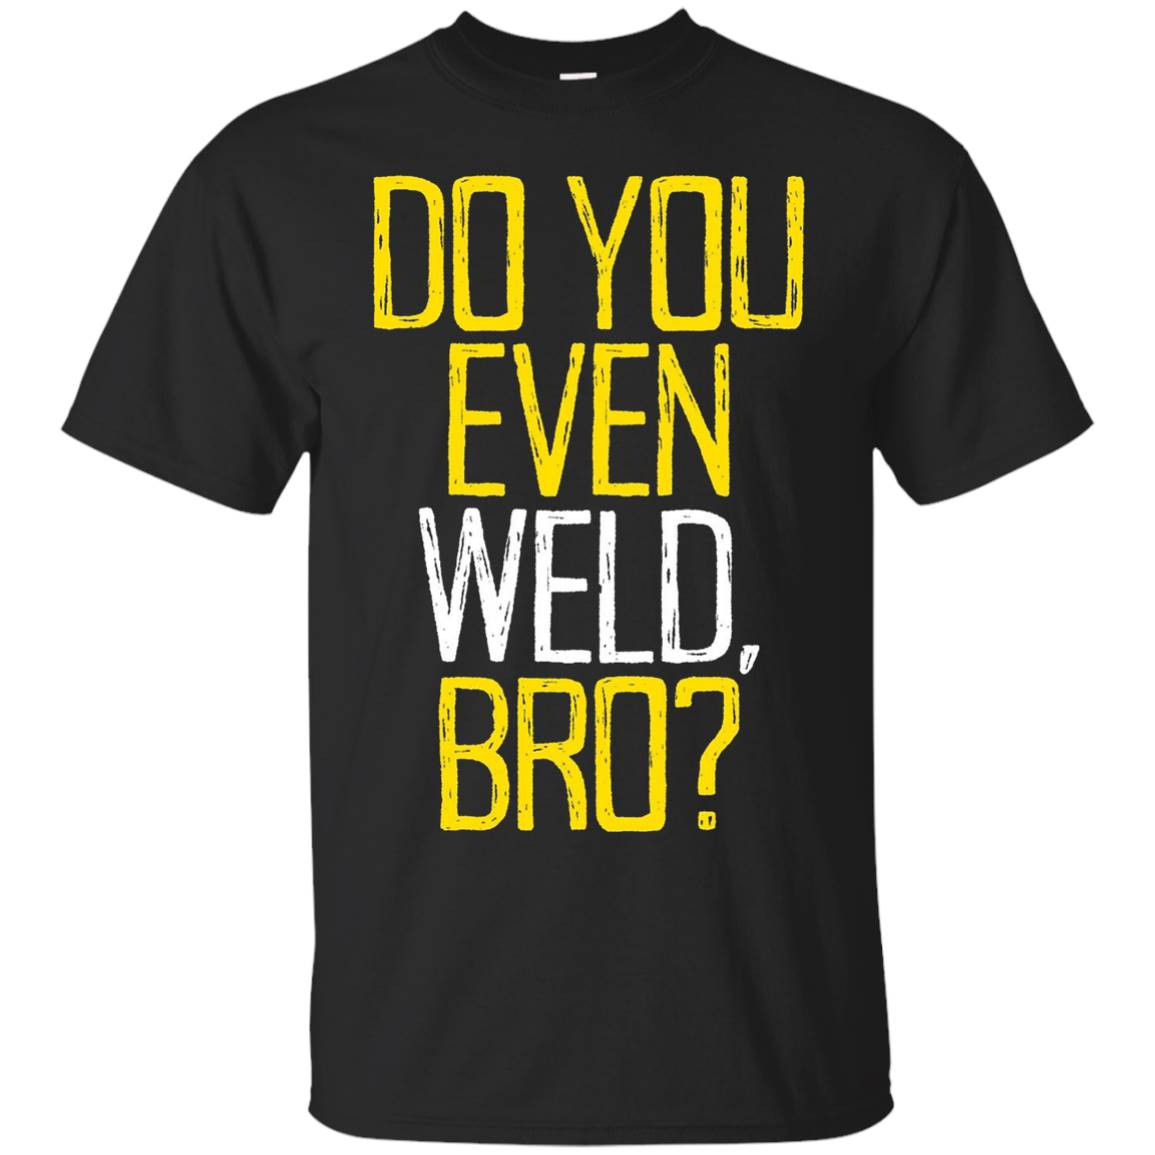 Do you even weld, bro shirt